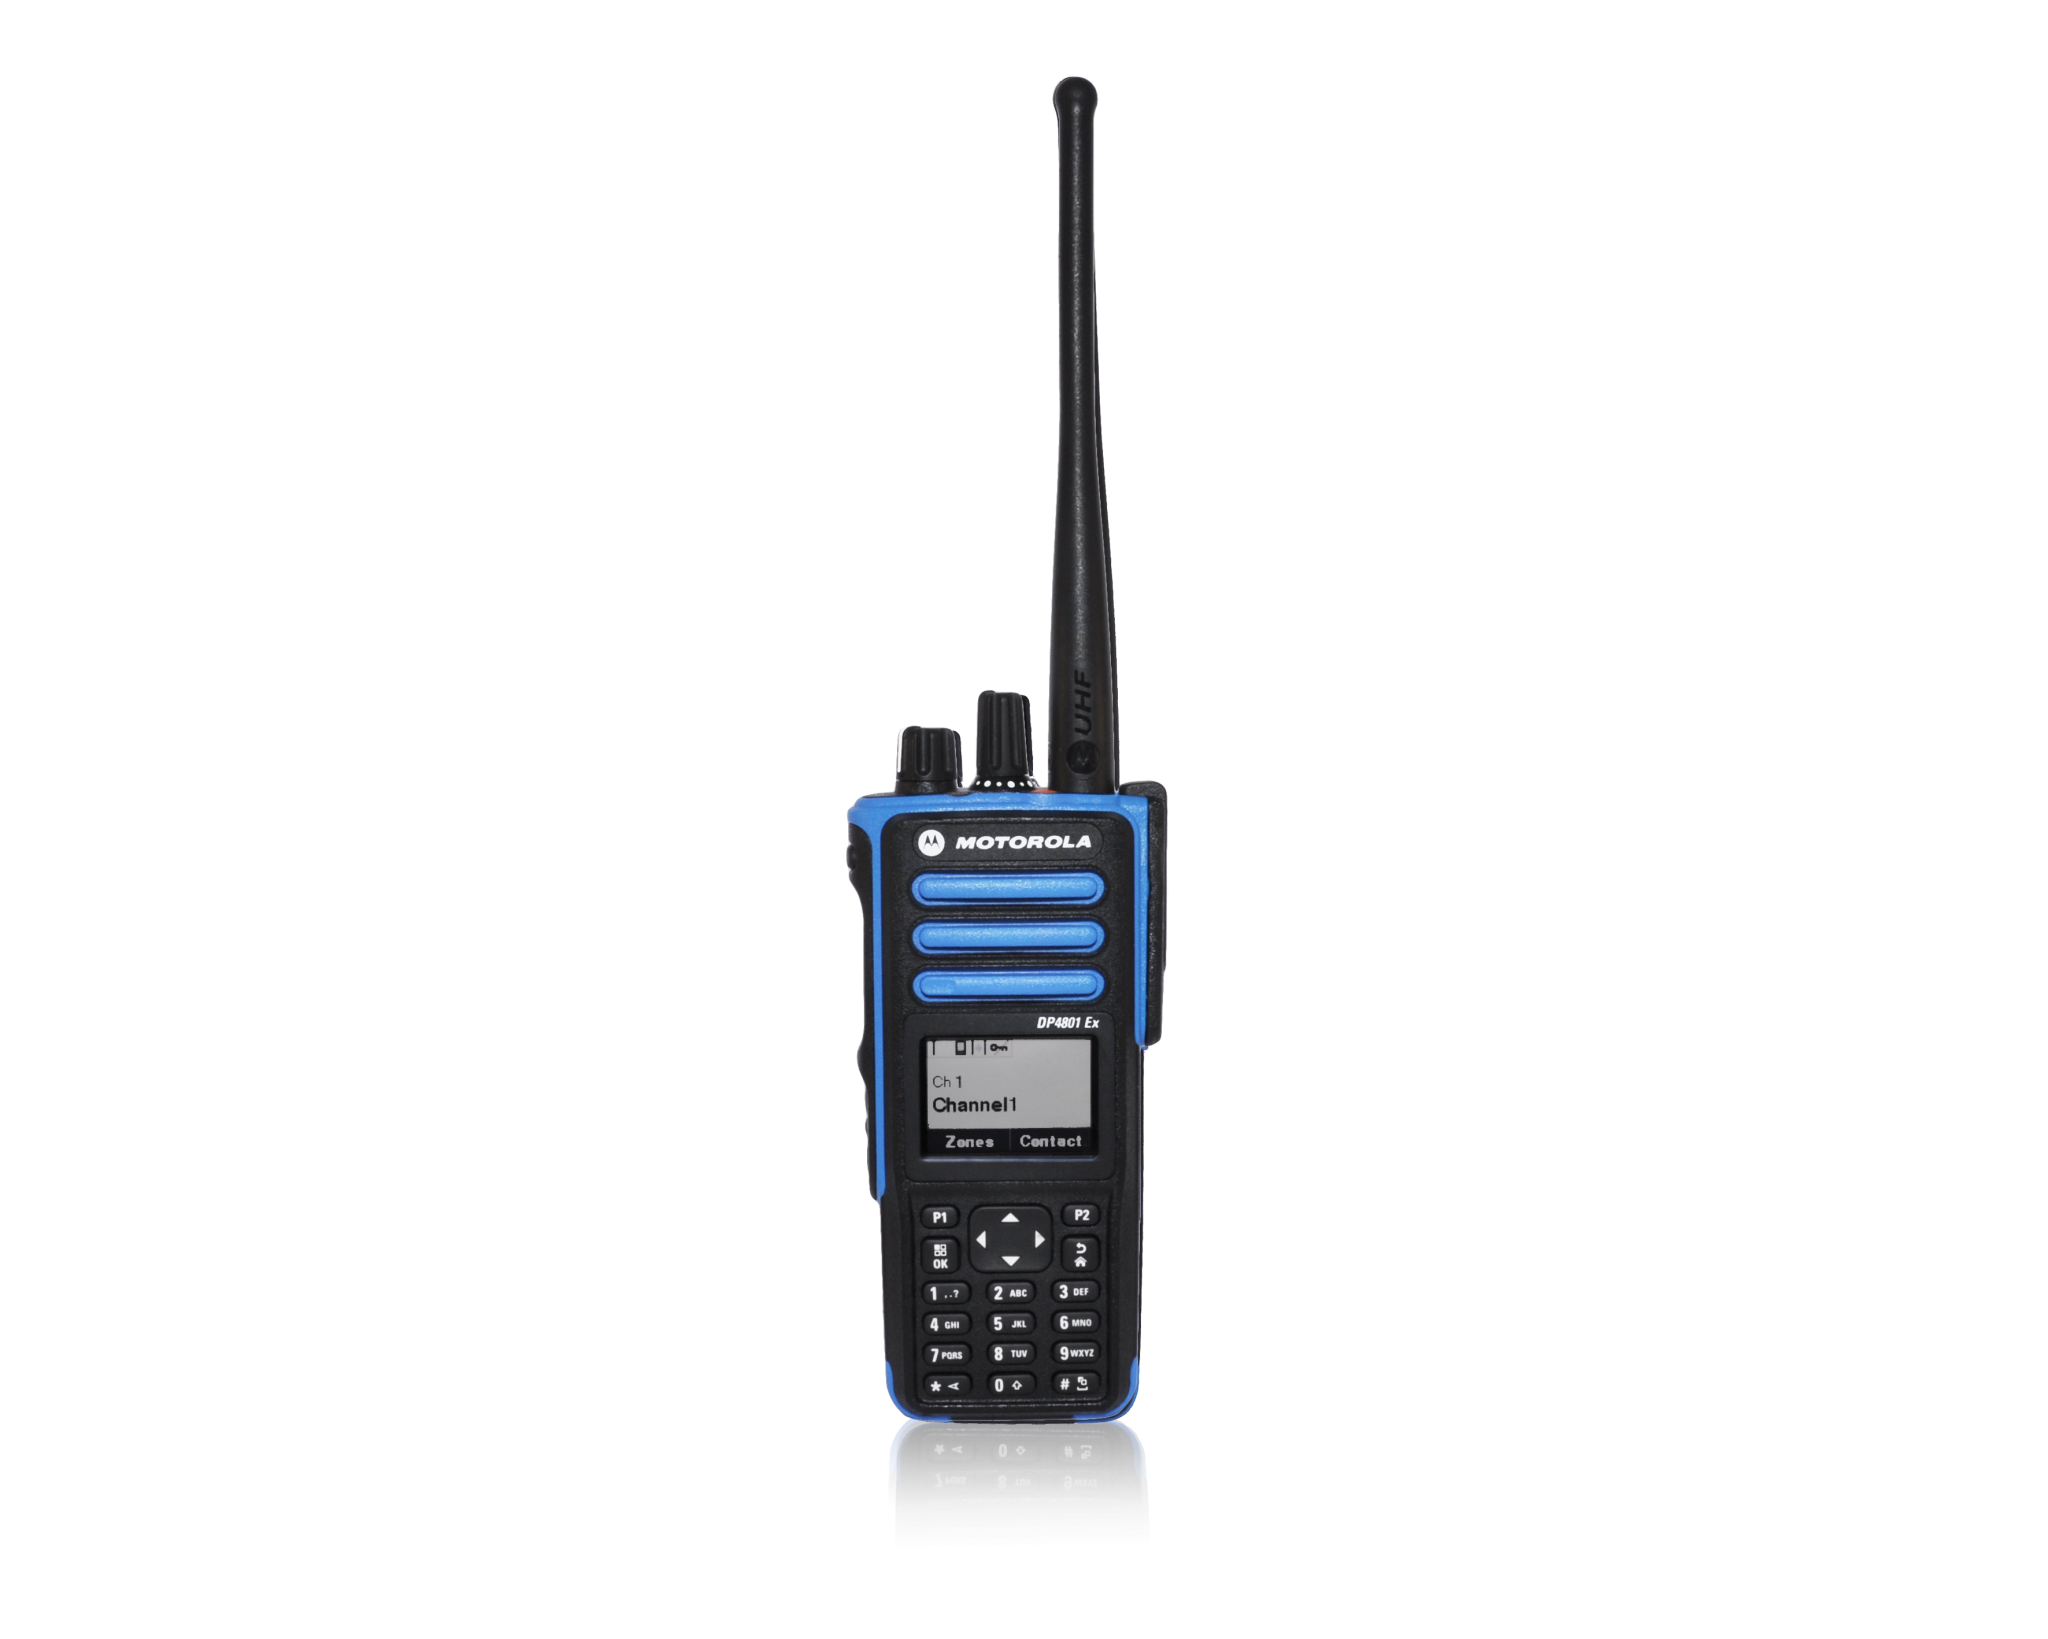 I  2200T  VR besides Run Wired Run Deep Subs May Finally Get Online furthermore Stacker besides 888 Rec BF888S moreover Kenwood Nx 320 Digital Two Way Radio. on two way radio vhf antenna